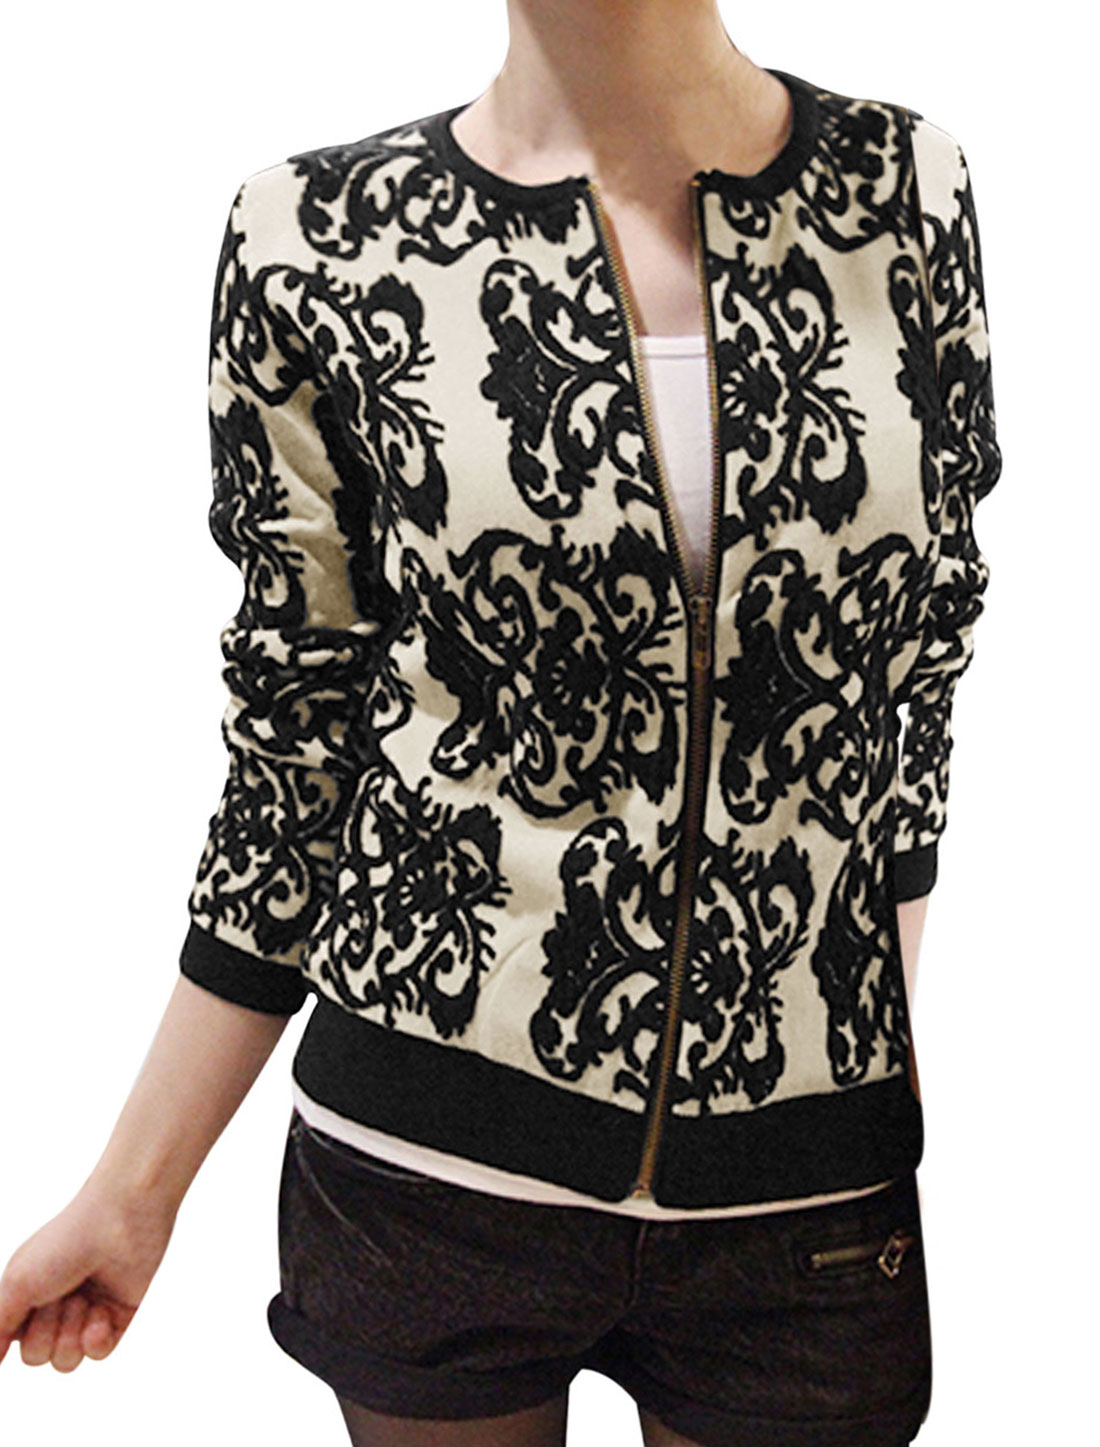 Lady Zip Up Front Jacquard Pattern Long Sleeve Knit Jacket Black Beige S